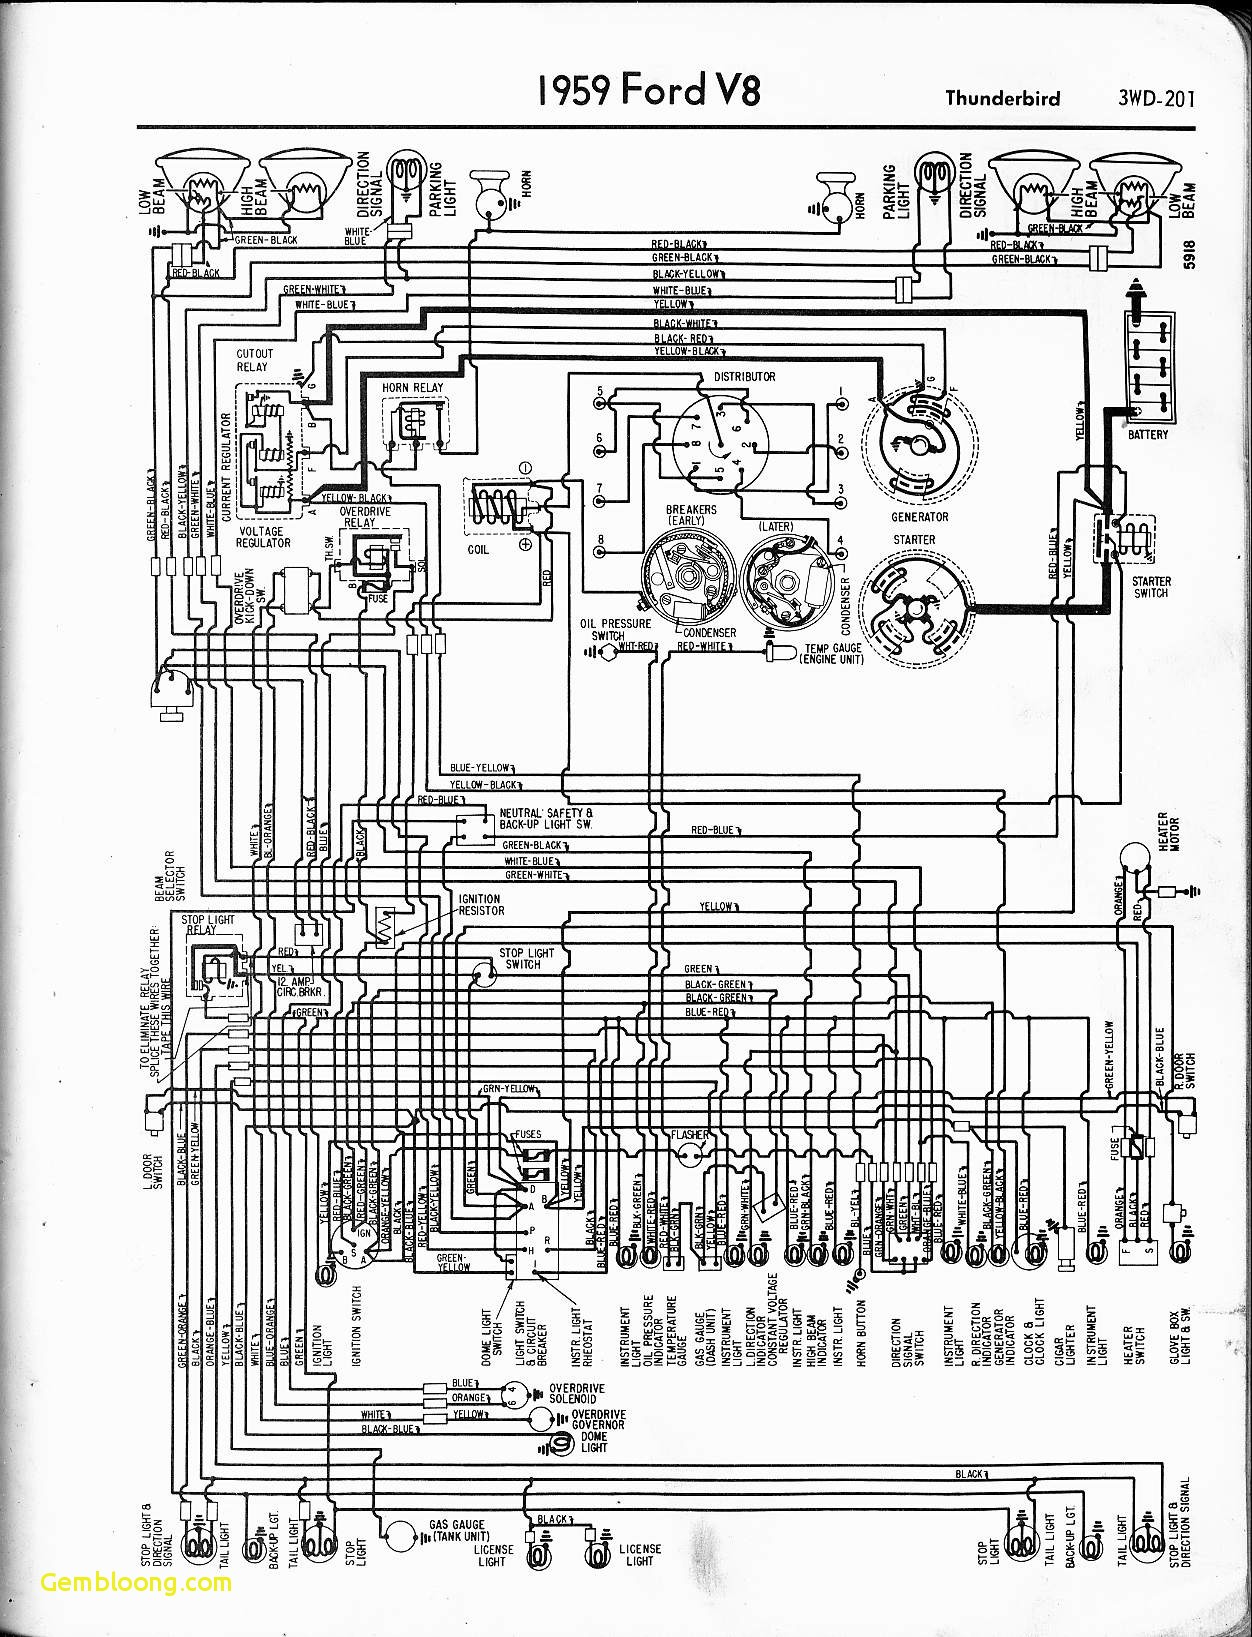 350z Engine Diagram Diagram Crossover Ads Wiring 336is Custom Project Wiring Diagram • Of 350z Engine Diagram Diagram Crossover Ads Wiring 336is Custom Project Wiring Diagram •